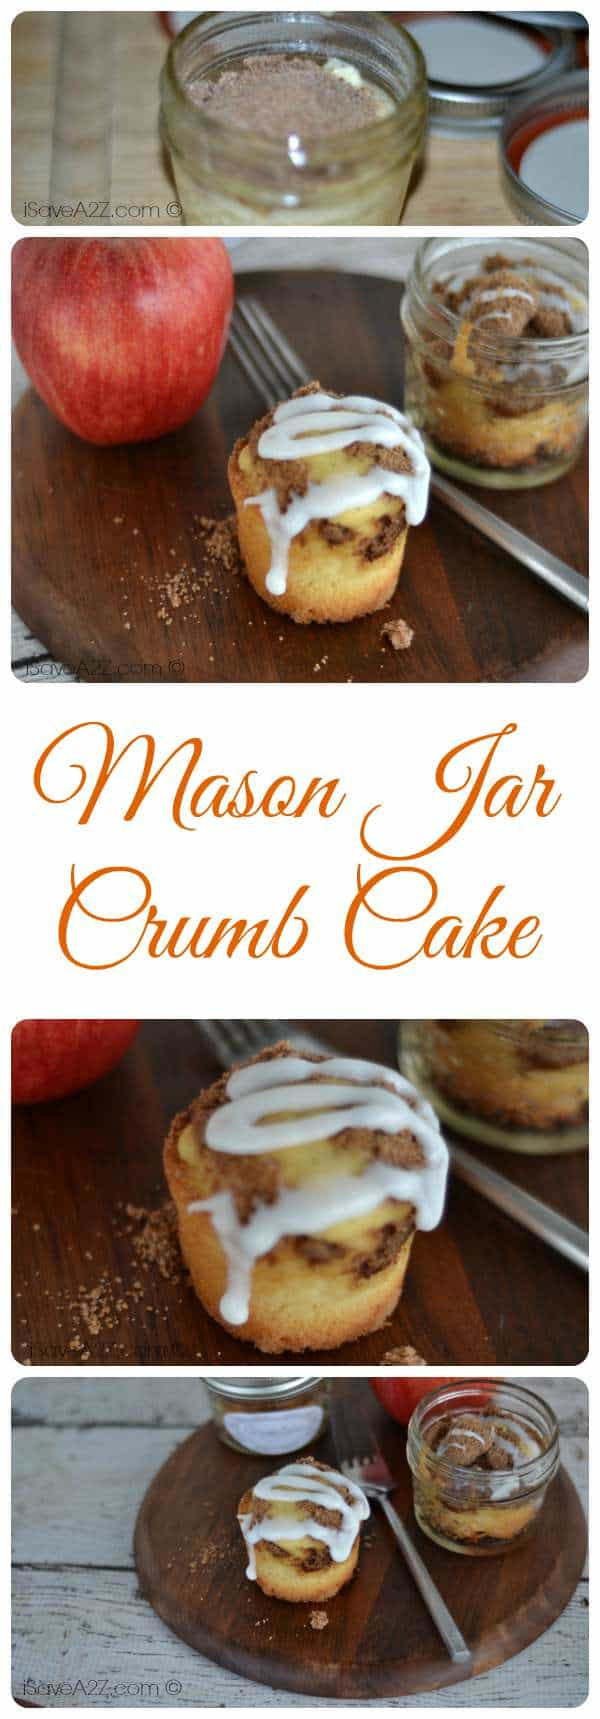 Mason Jar Crumb Cake Recipe Easy Brunch Dessert Idea